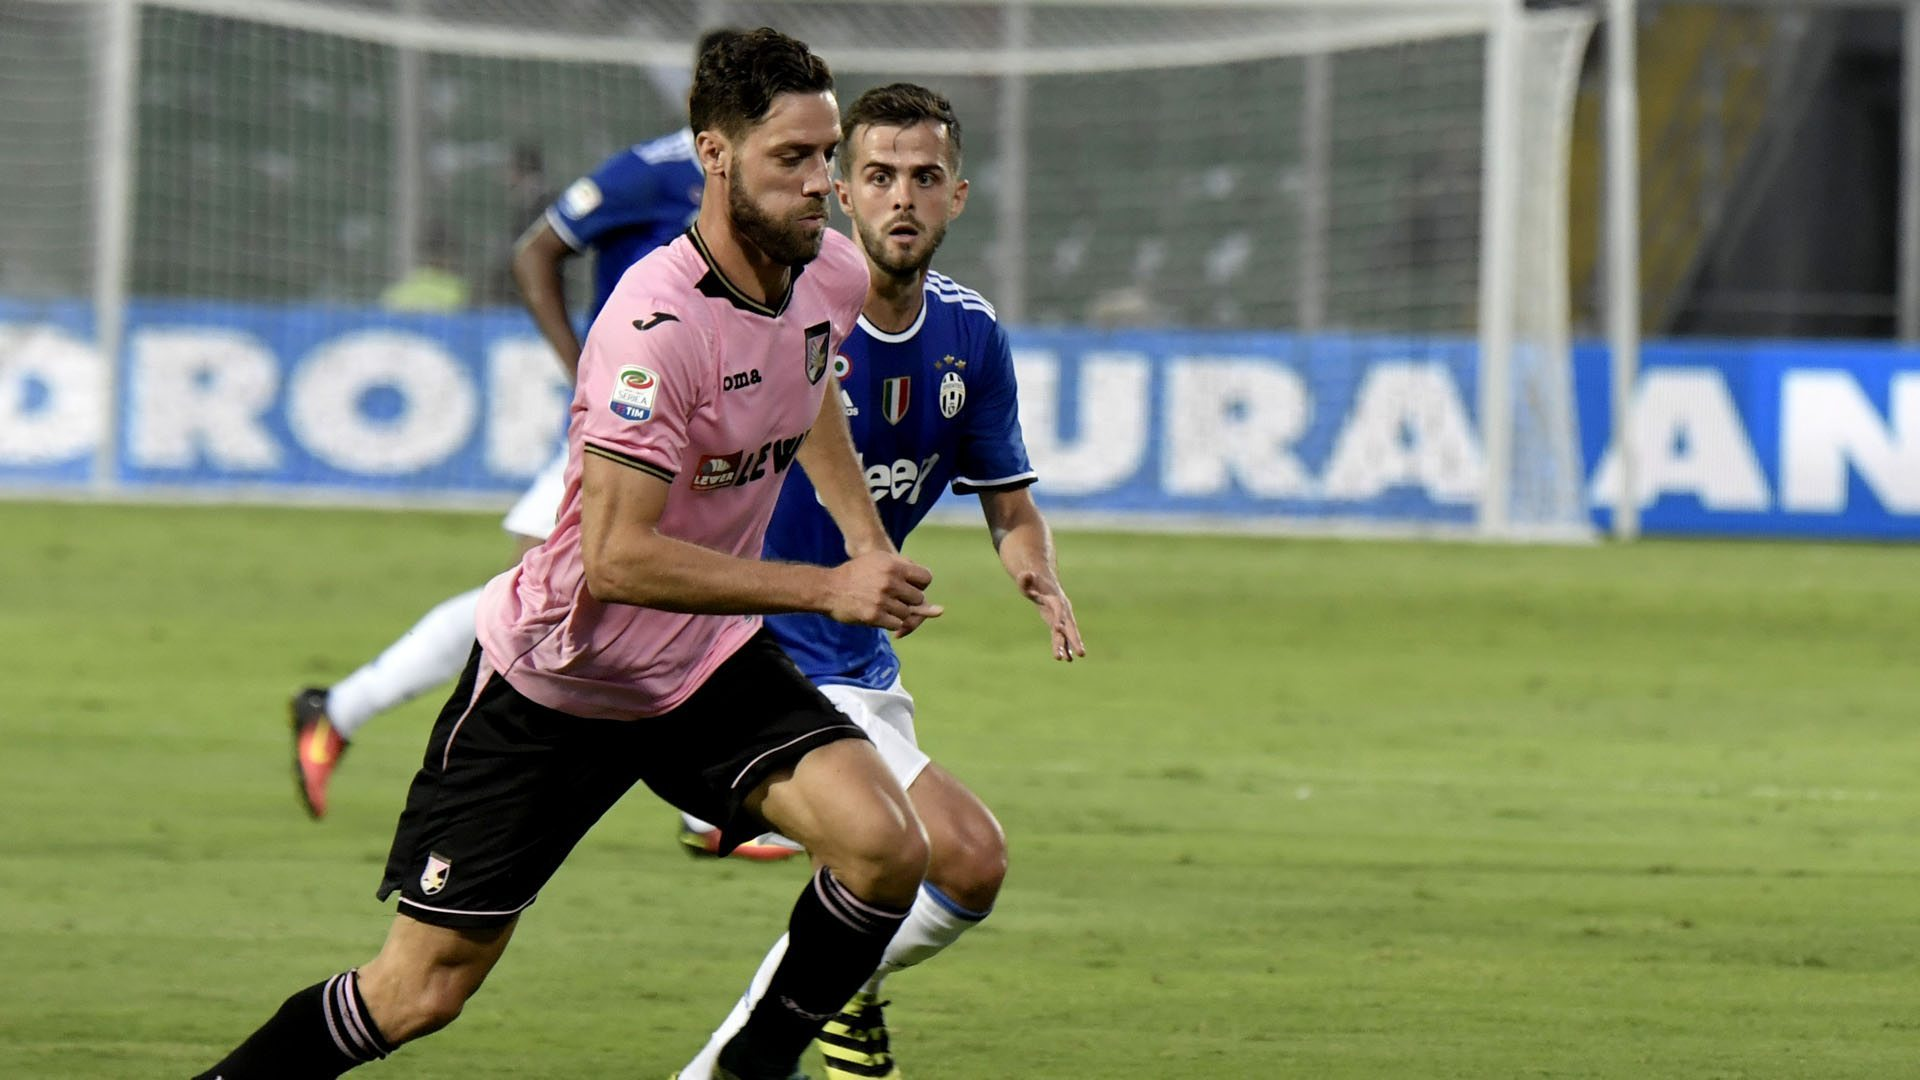 Juventus' midfielder Miralem Pjanic (R) fights for the ball with Palermo's defender from Italy Andrea Rispoli during the Italian Serie A football match Palermo vs Juventus on September 24, 2016 at the Renzo Barbera stadium in Palermo.  / AFP / TIZIANA FABI        (Photo credit should read TIZIANA FABI/AFP/Getty Images)